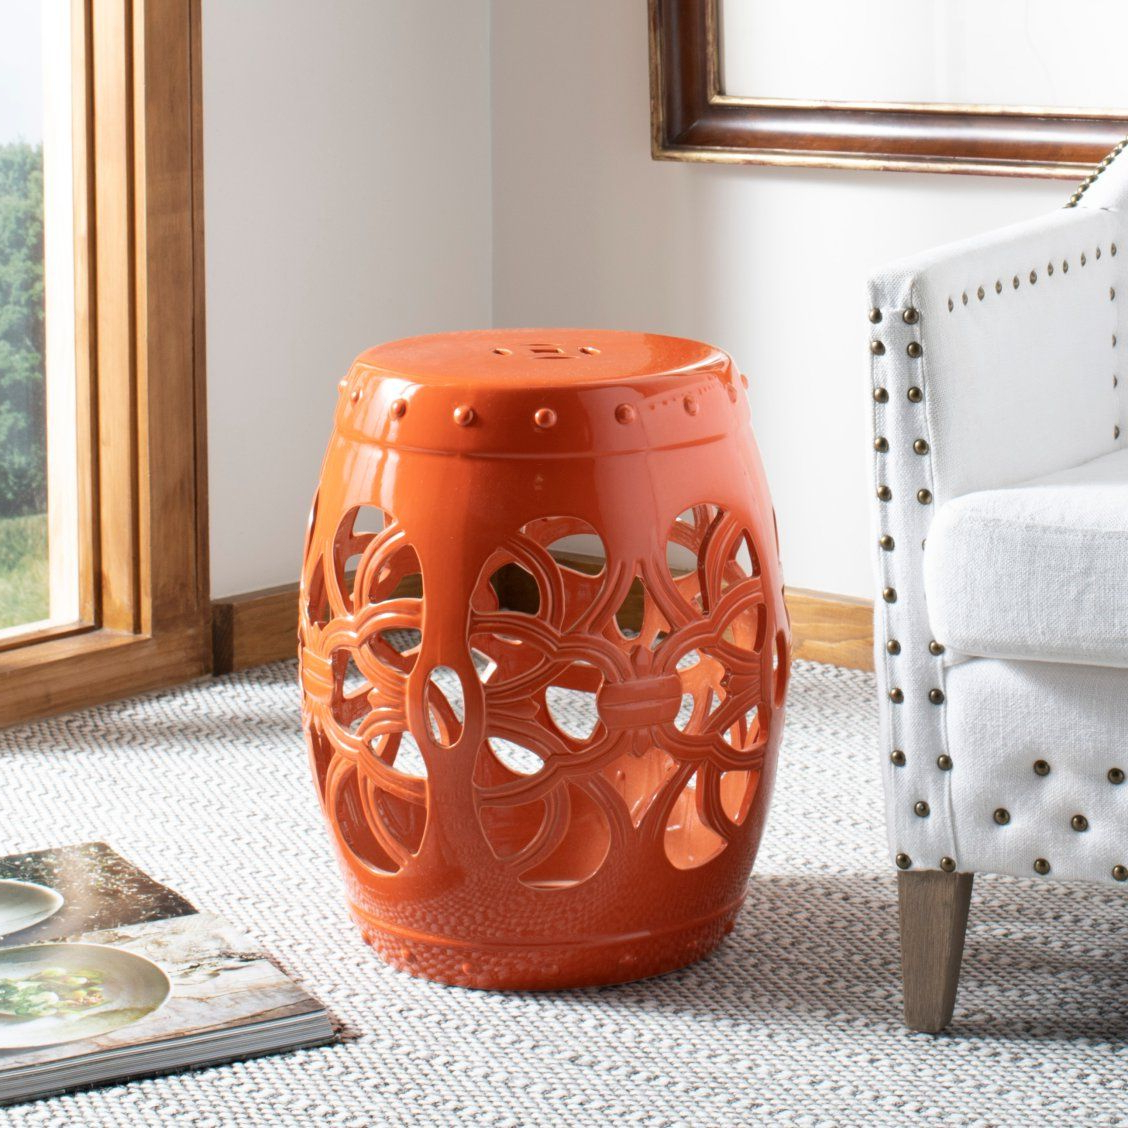 2019 Perked Up With Eye Popping Orange, The Ages Old Motif Of The Regarding Amettes Garden Stools (View 12 of 30)